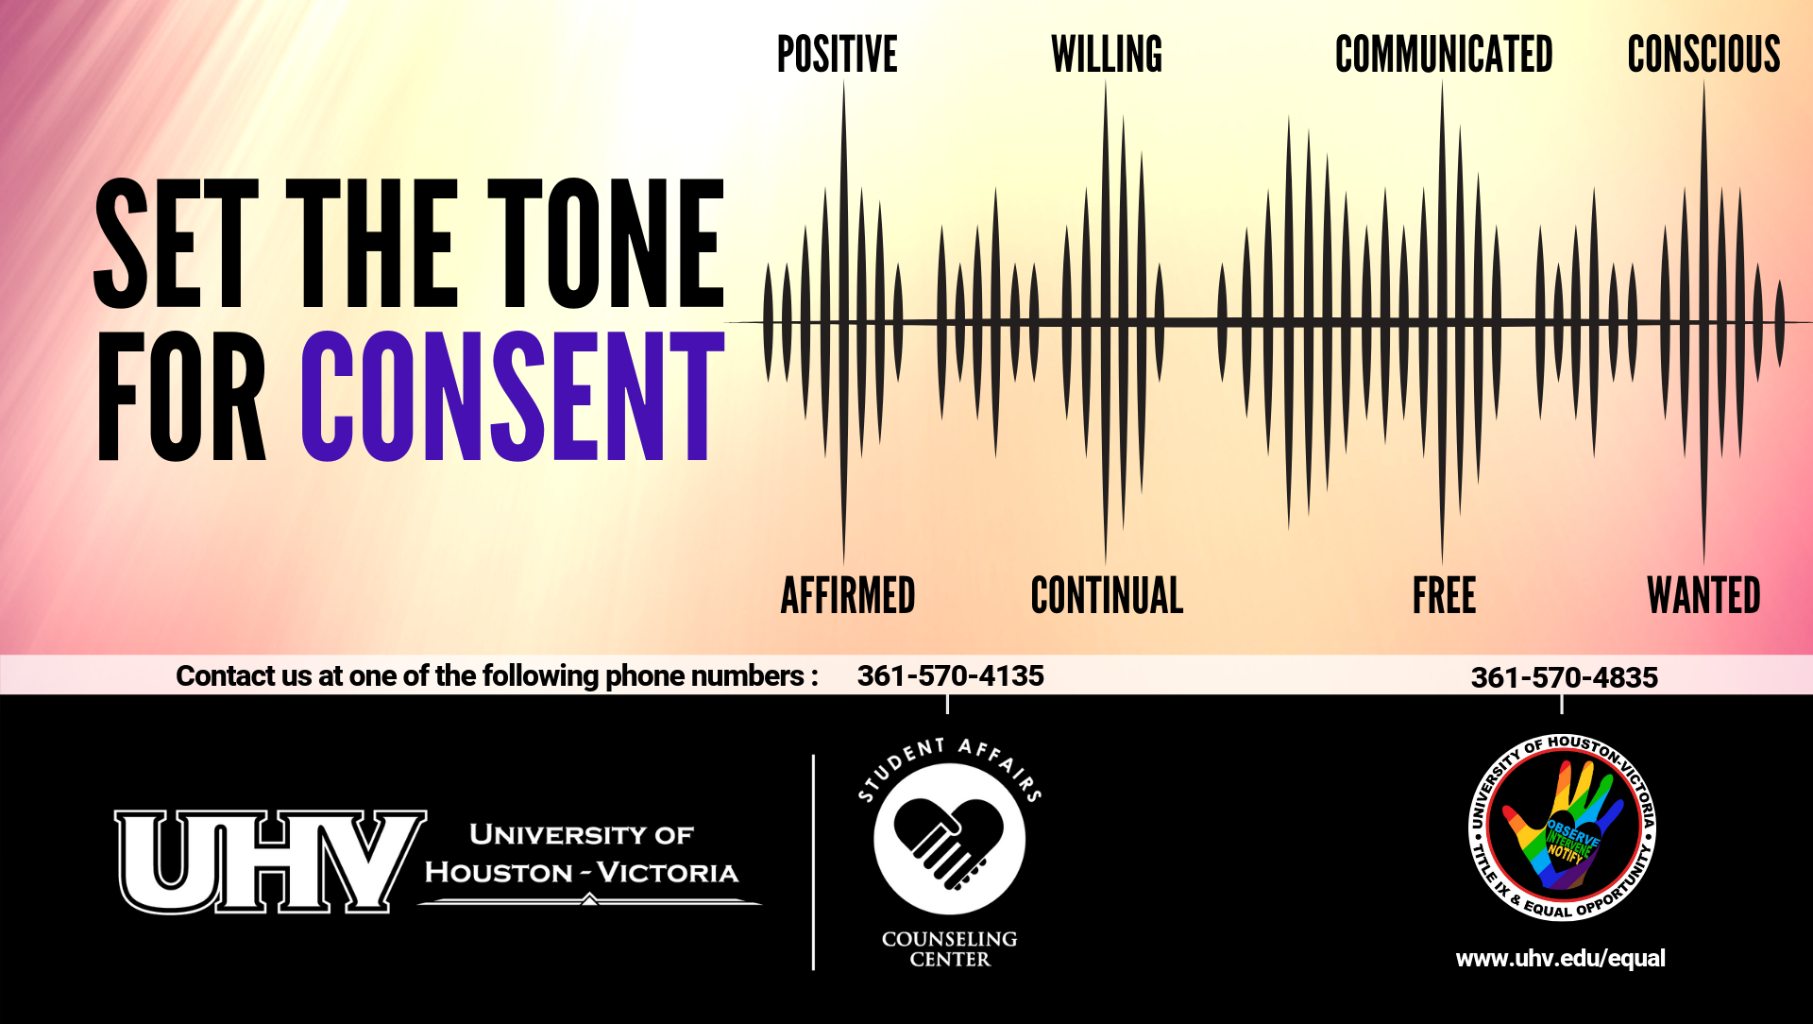 Consent poster and resources showing sound bar and